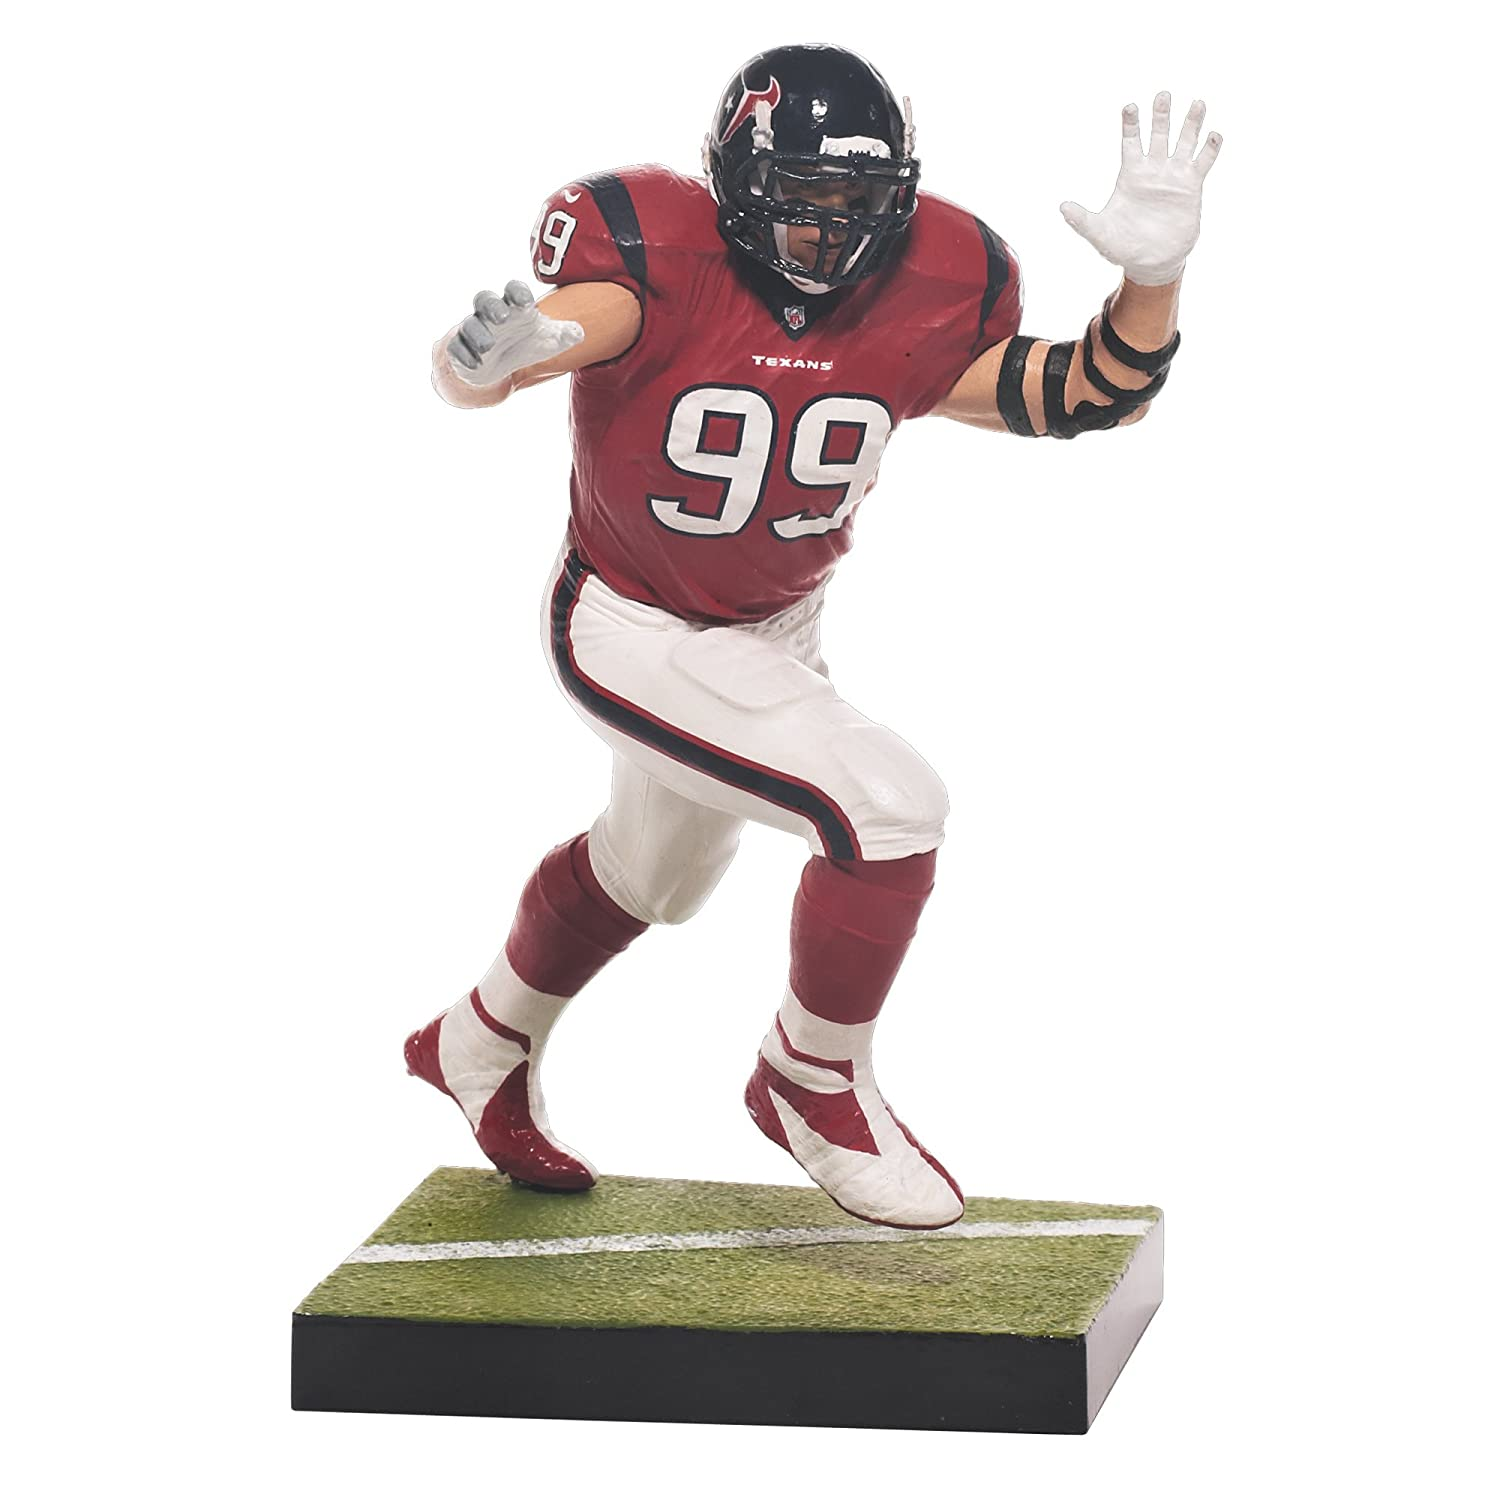 McFARLANE NFL SERIES 33 JJ WATT HOUSTON TEXANS ACTION FIGURE